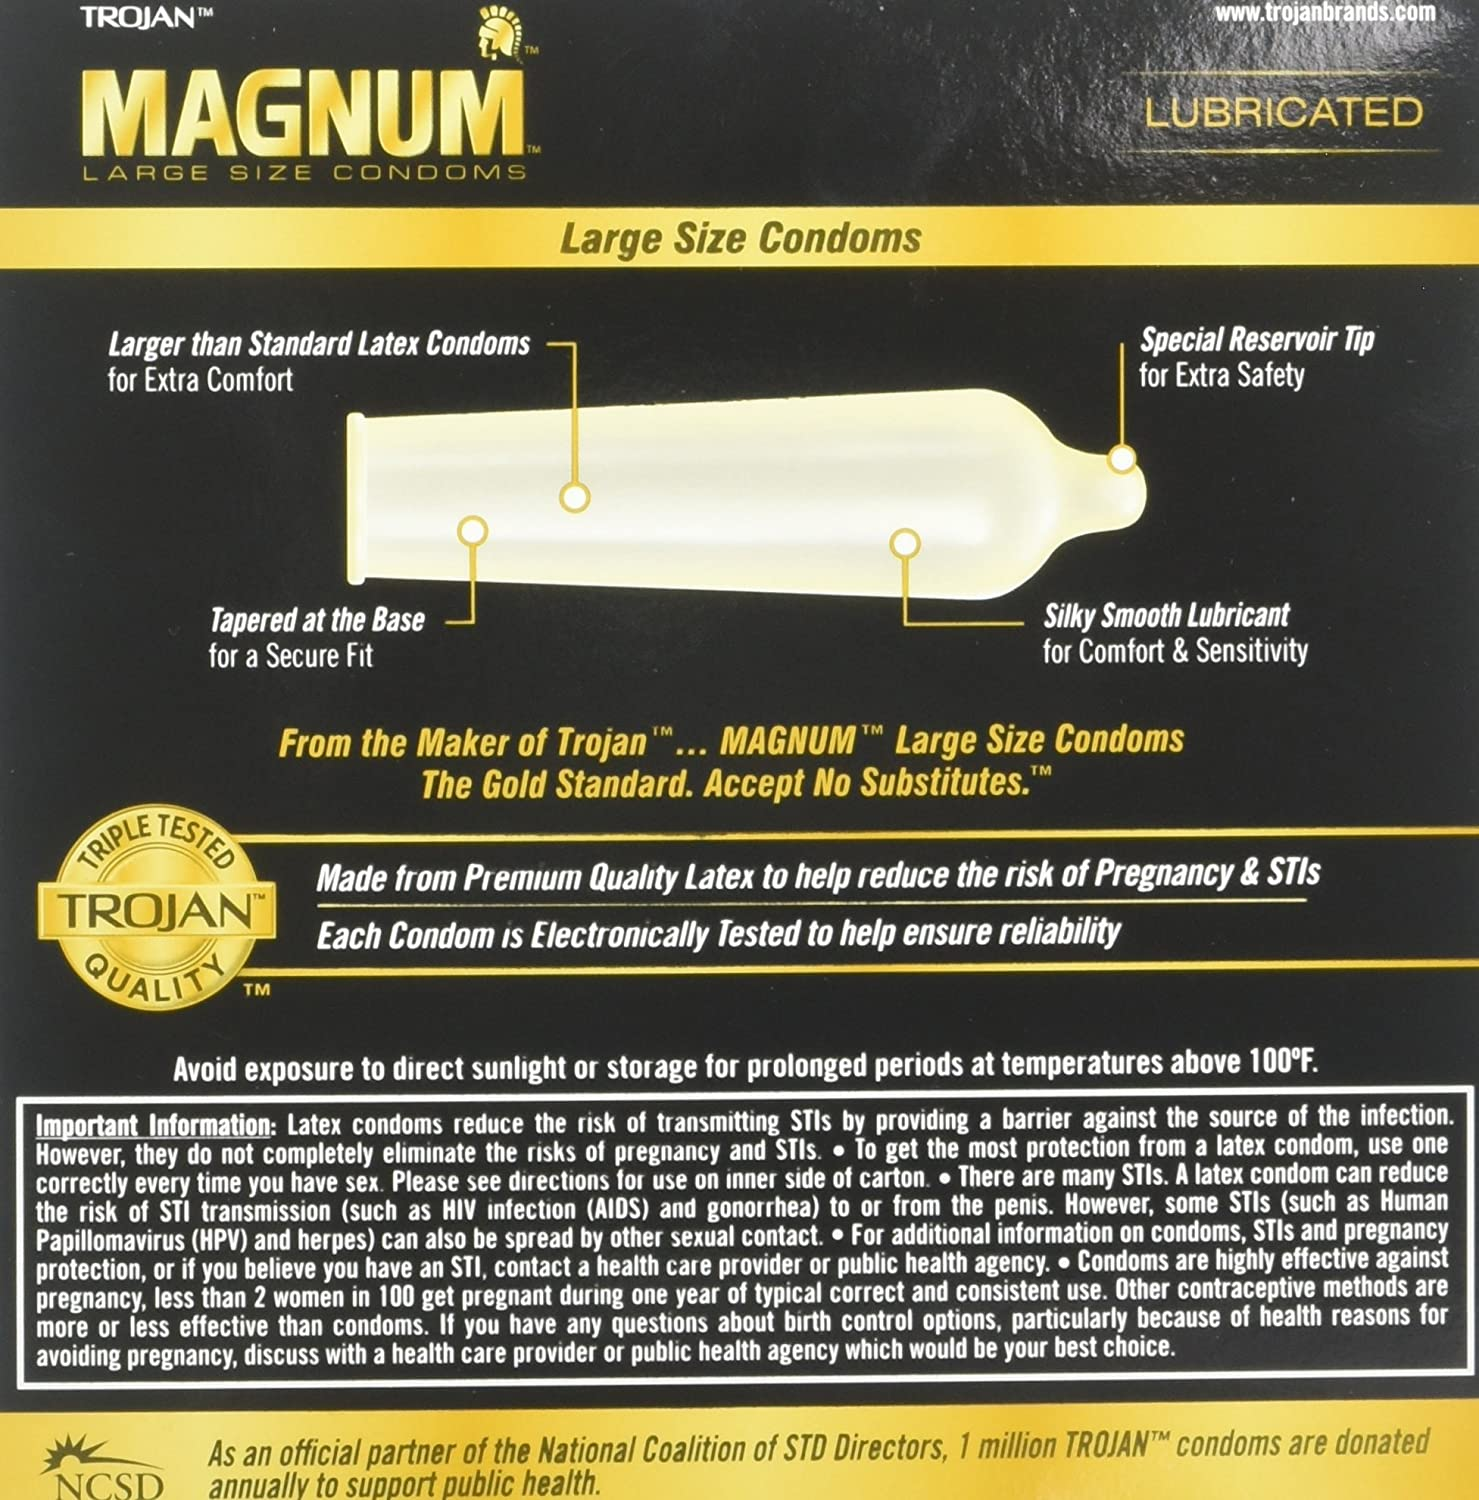 Amazon.com: Trojan Magnum Lubricated Latex Large Size Condoms ...